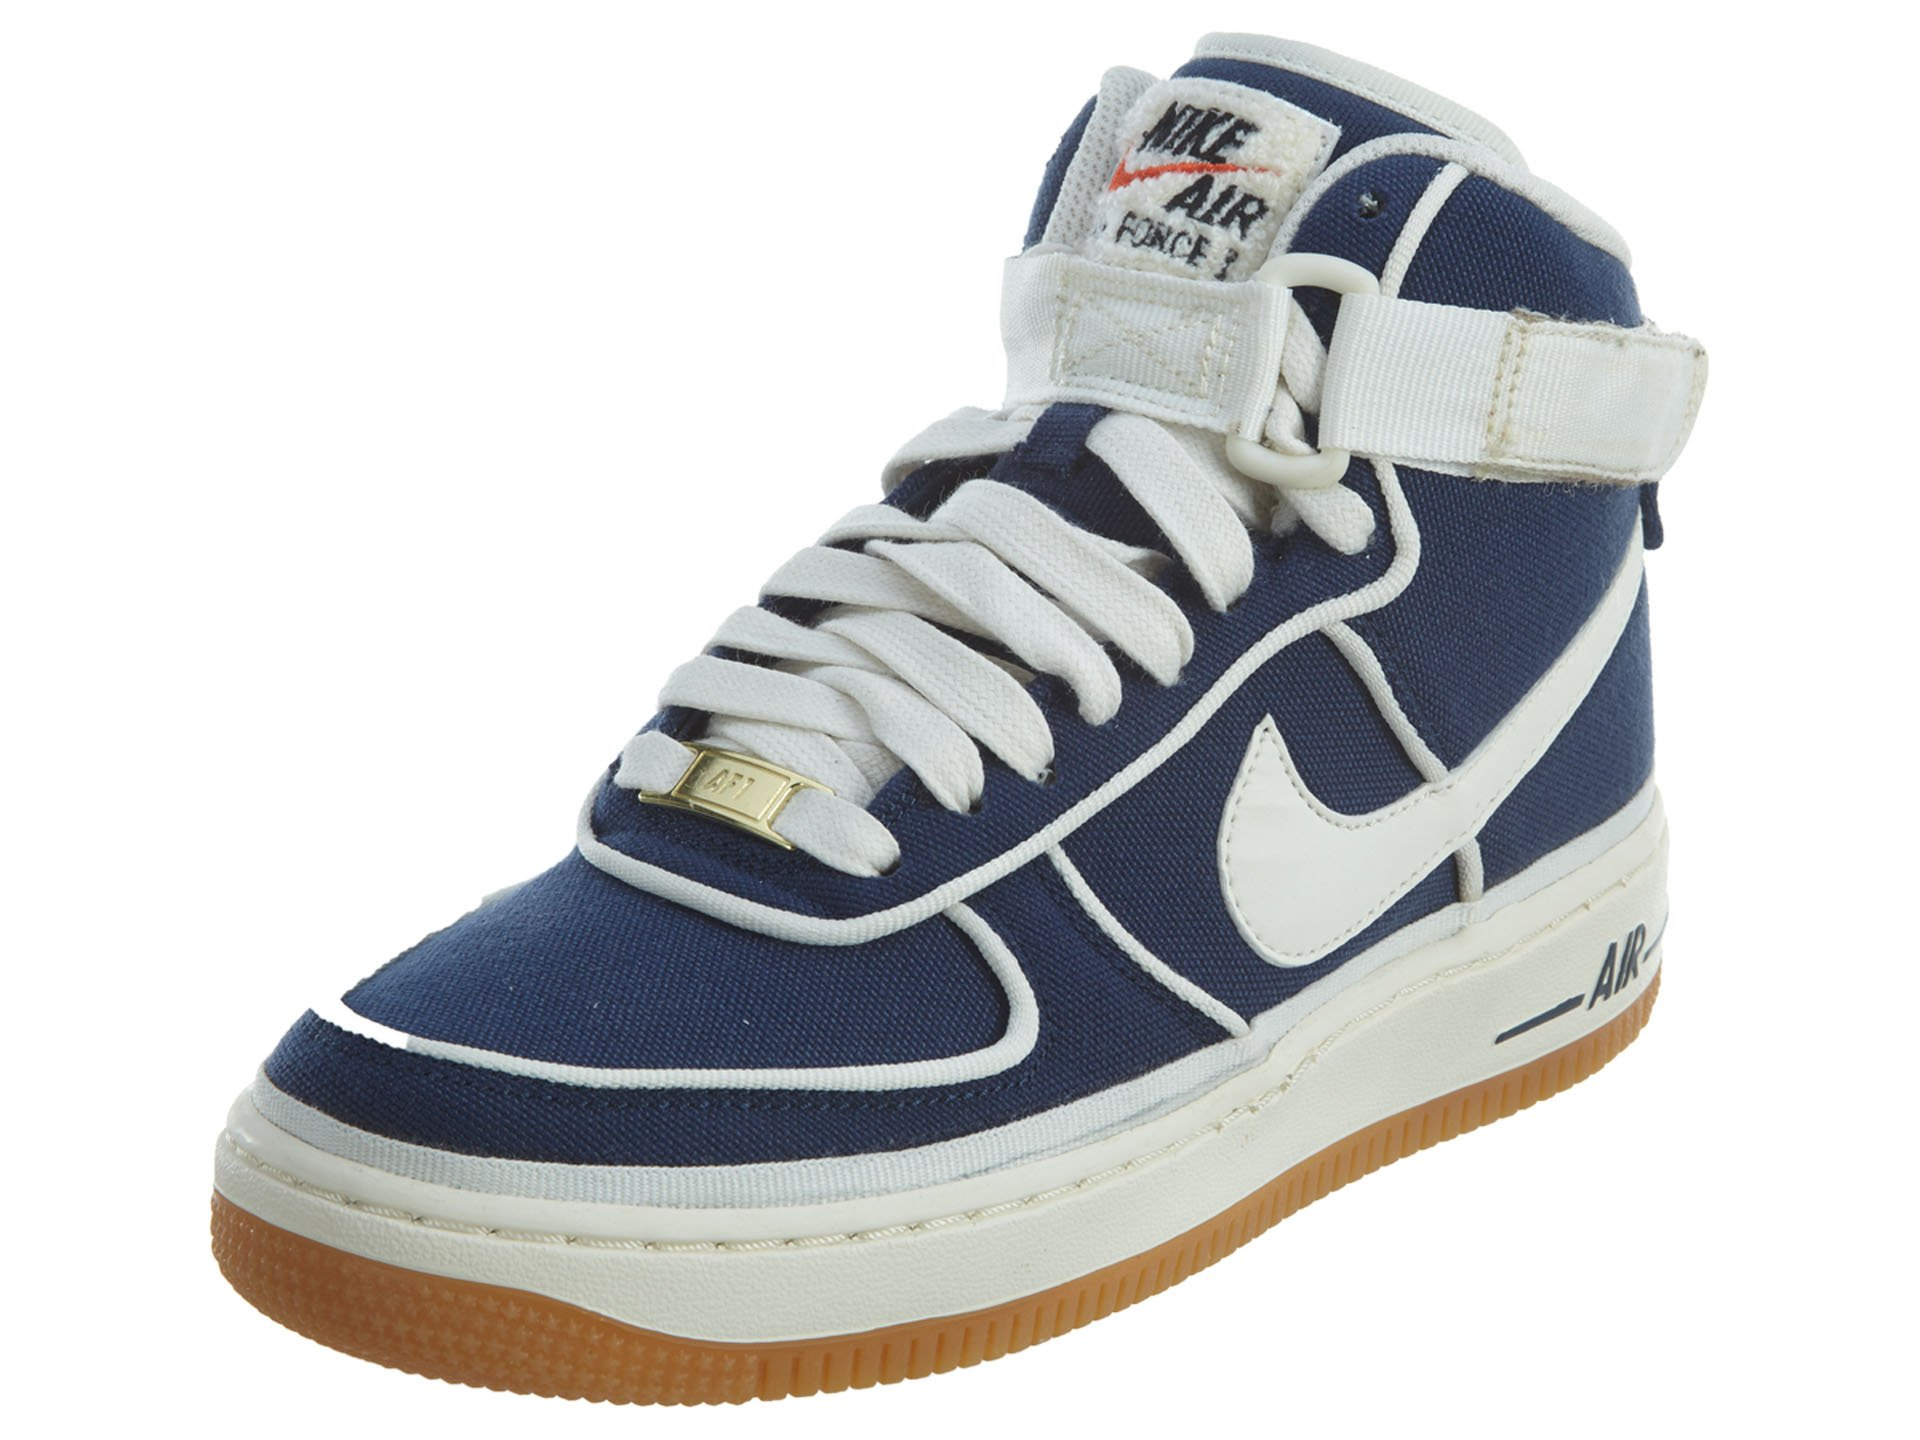 Nike Air Force 1 High Lv8 Boys/Girls Style: 807617-400 Size: 4